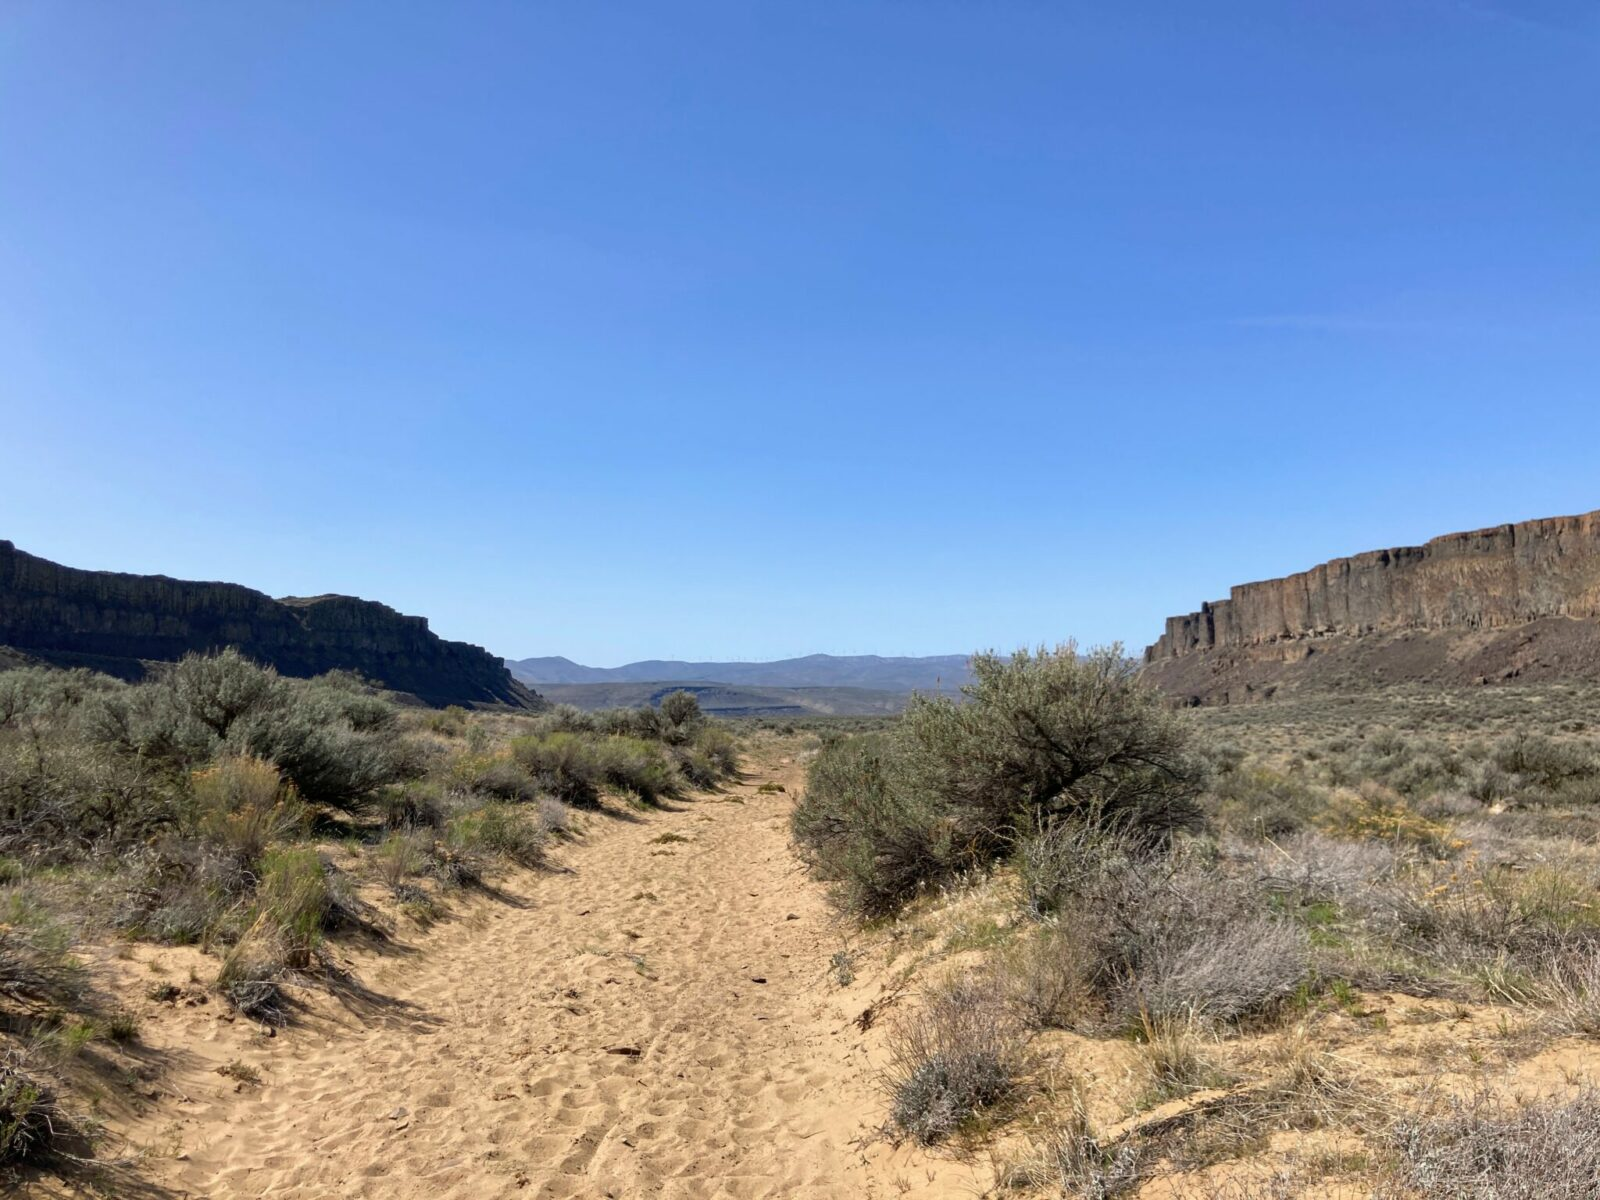 Frenchman coulee is lined with black and brown vertical columnar basalt and a floor of sand and sage brush. In the distance are more high hills